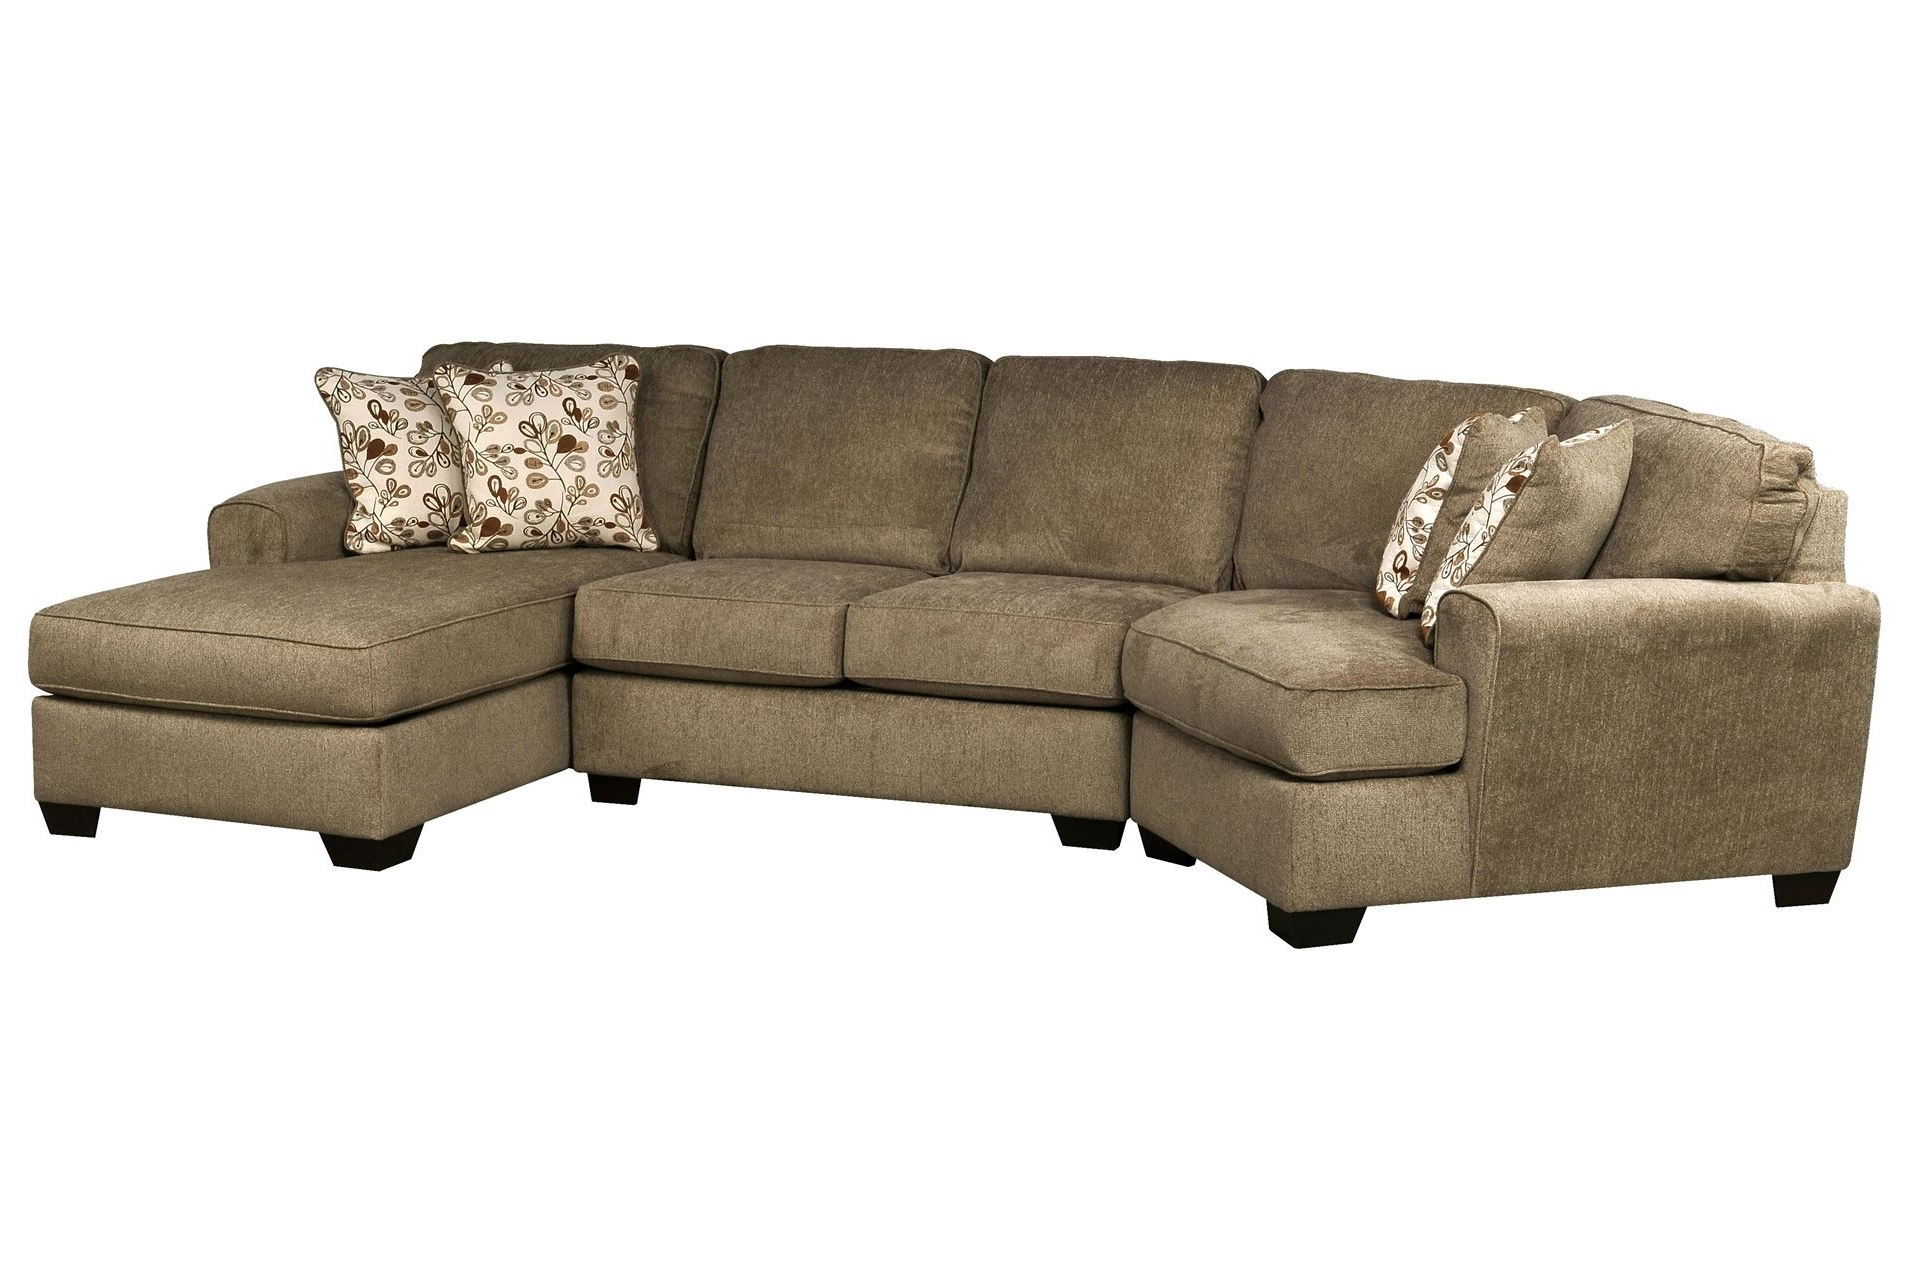 Most Recently Released Angled Chaise Sofas Regarding Don't Love The Color, But The Shape Is Great! (View 10 of 15)